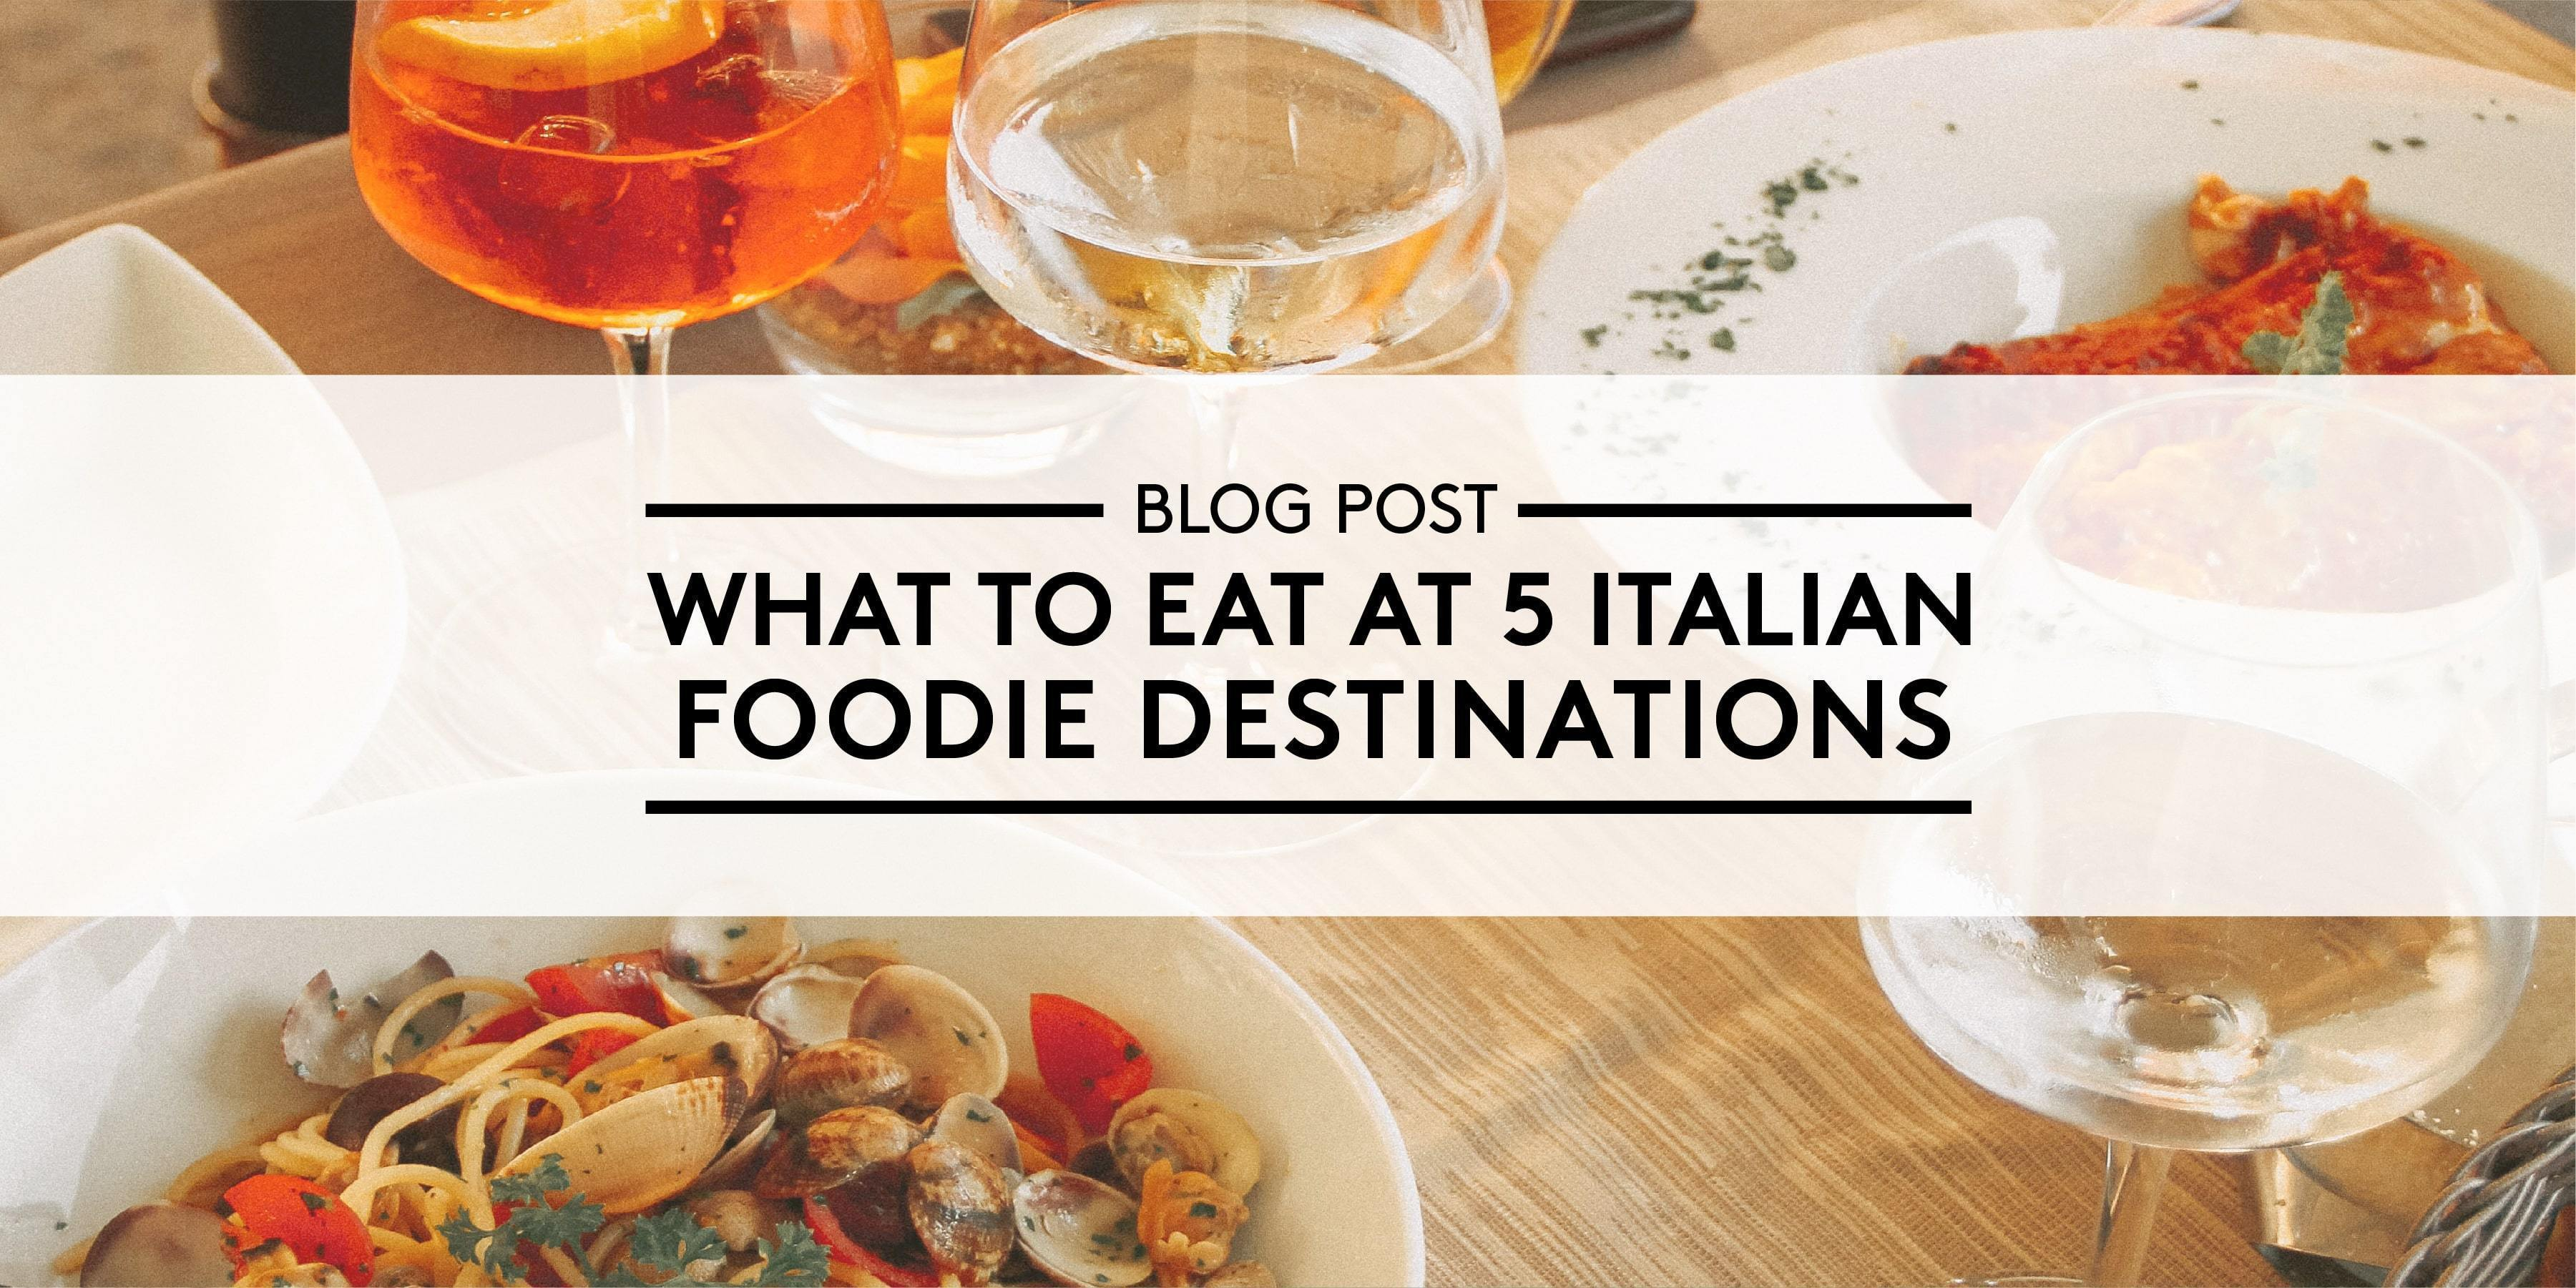 What to Eat at 5 Italian Foodie Destinations